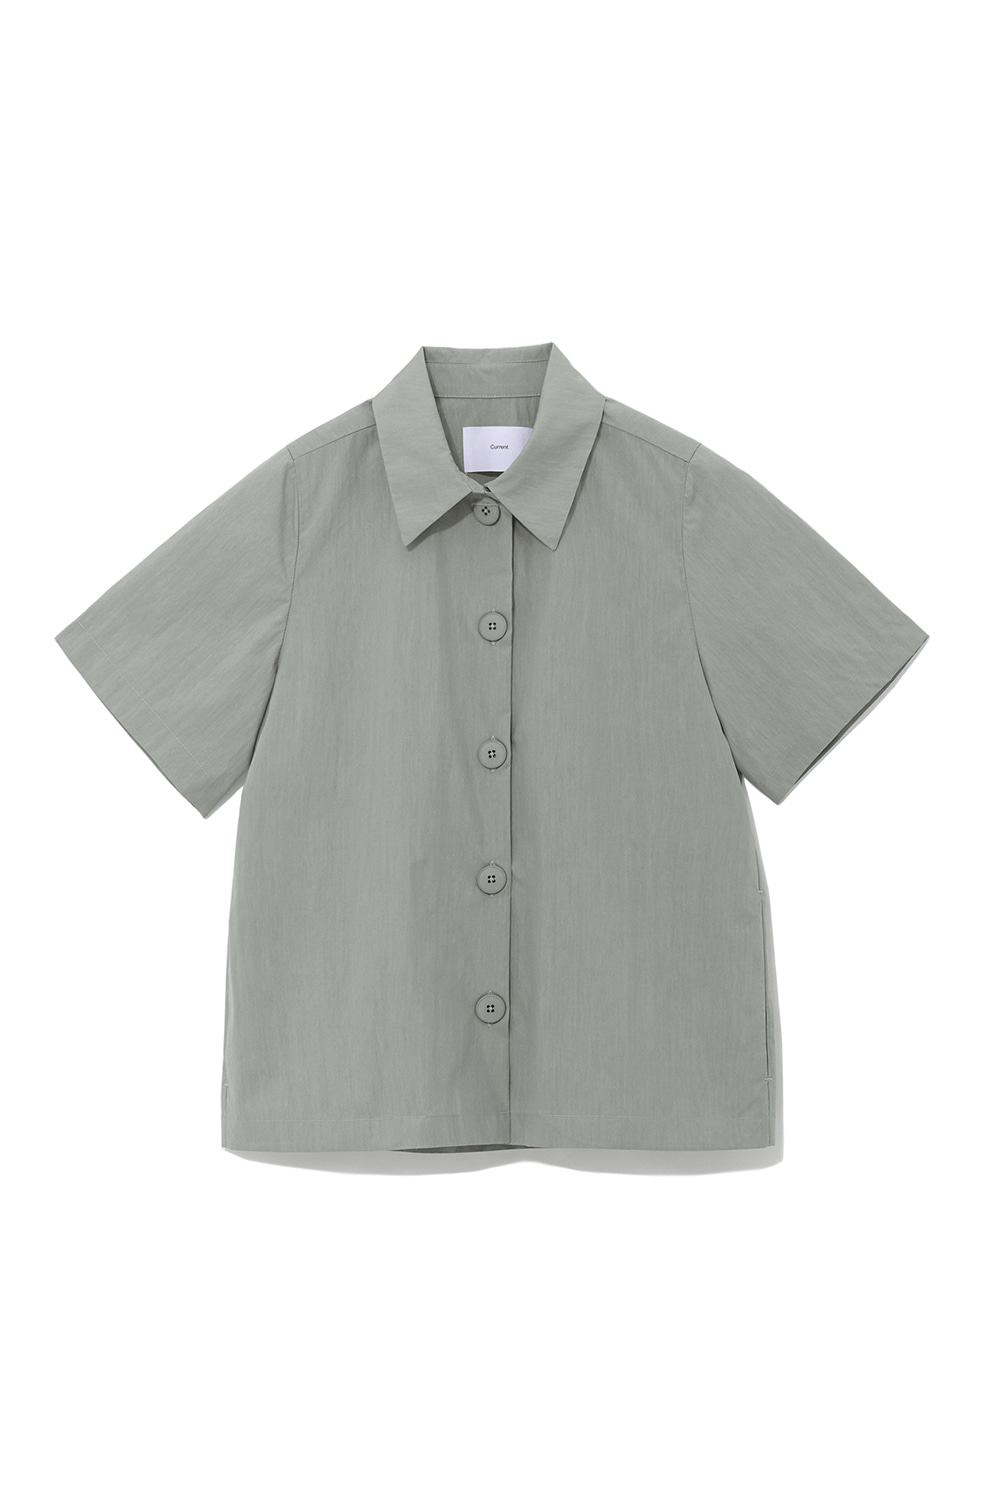 Over Shorts Shirts Women [Khaki]